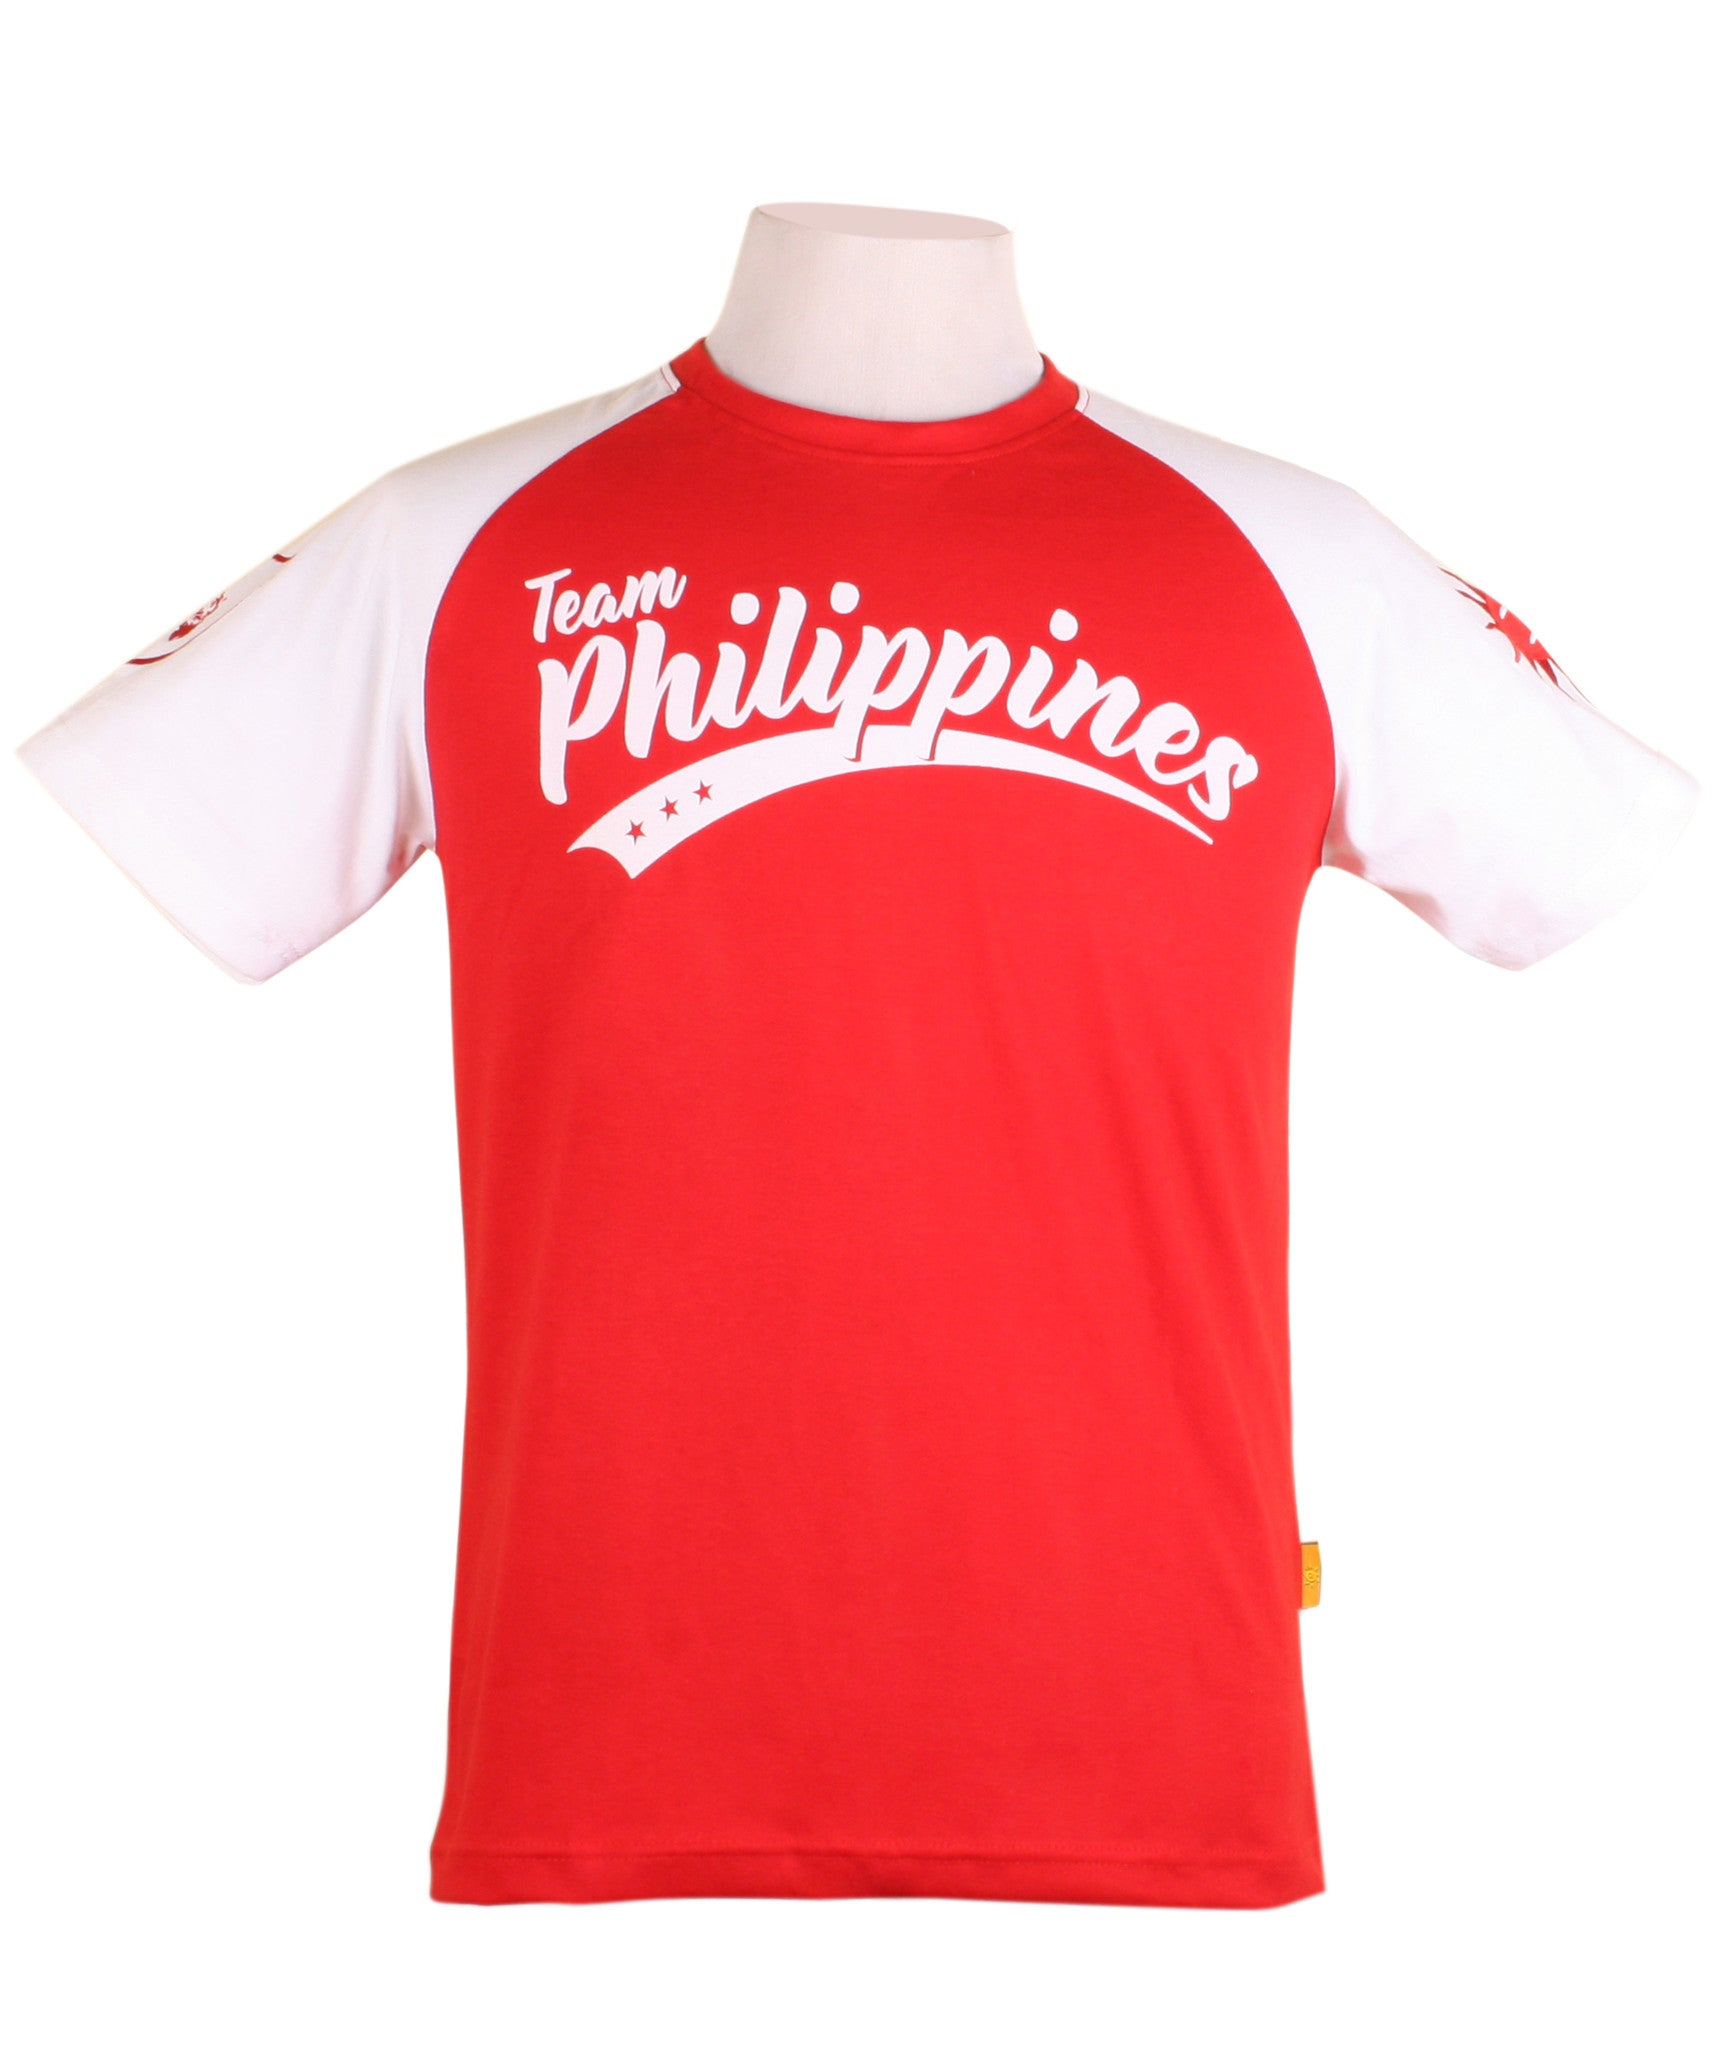 Team Philippines in red for Mens